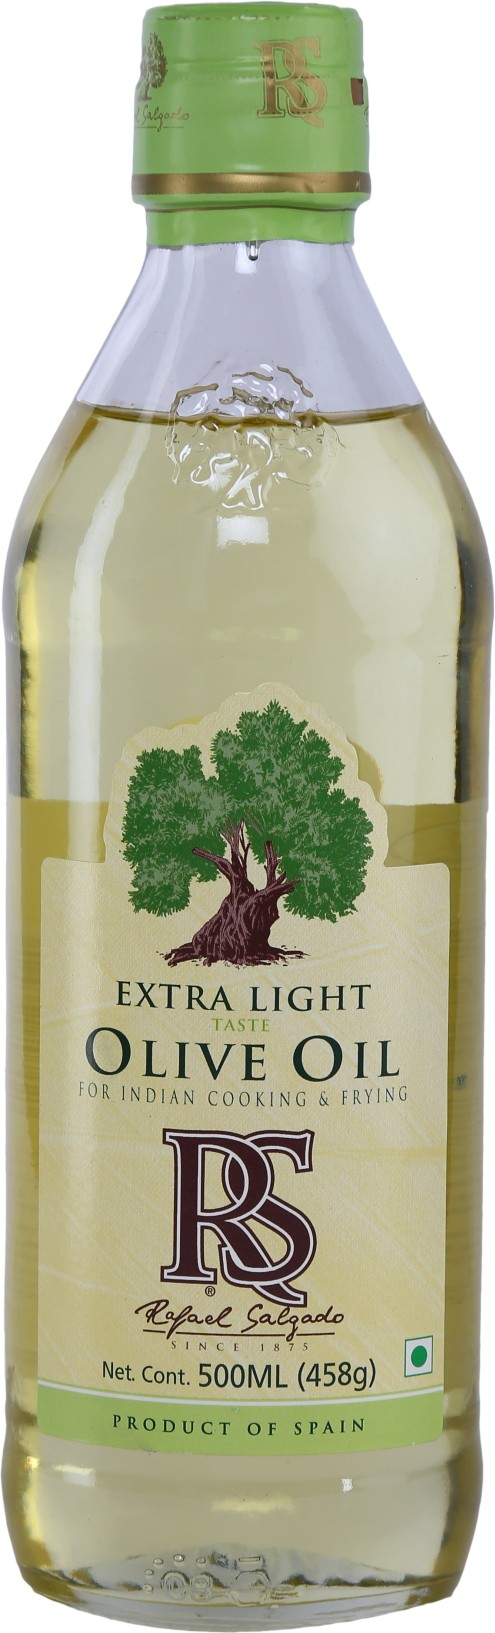 RS Extra Light Olive Oil 500 ml